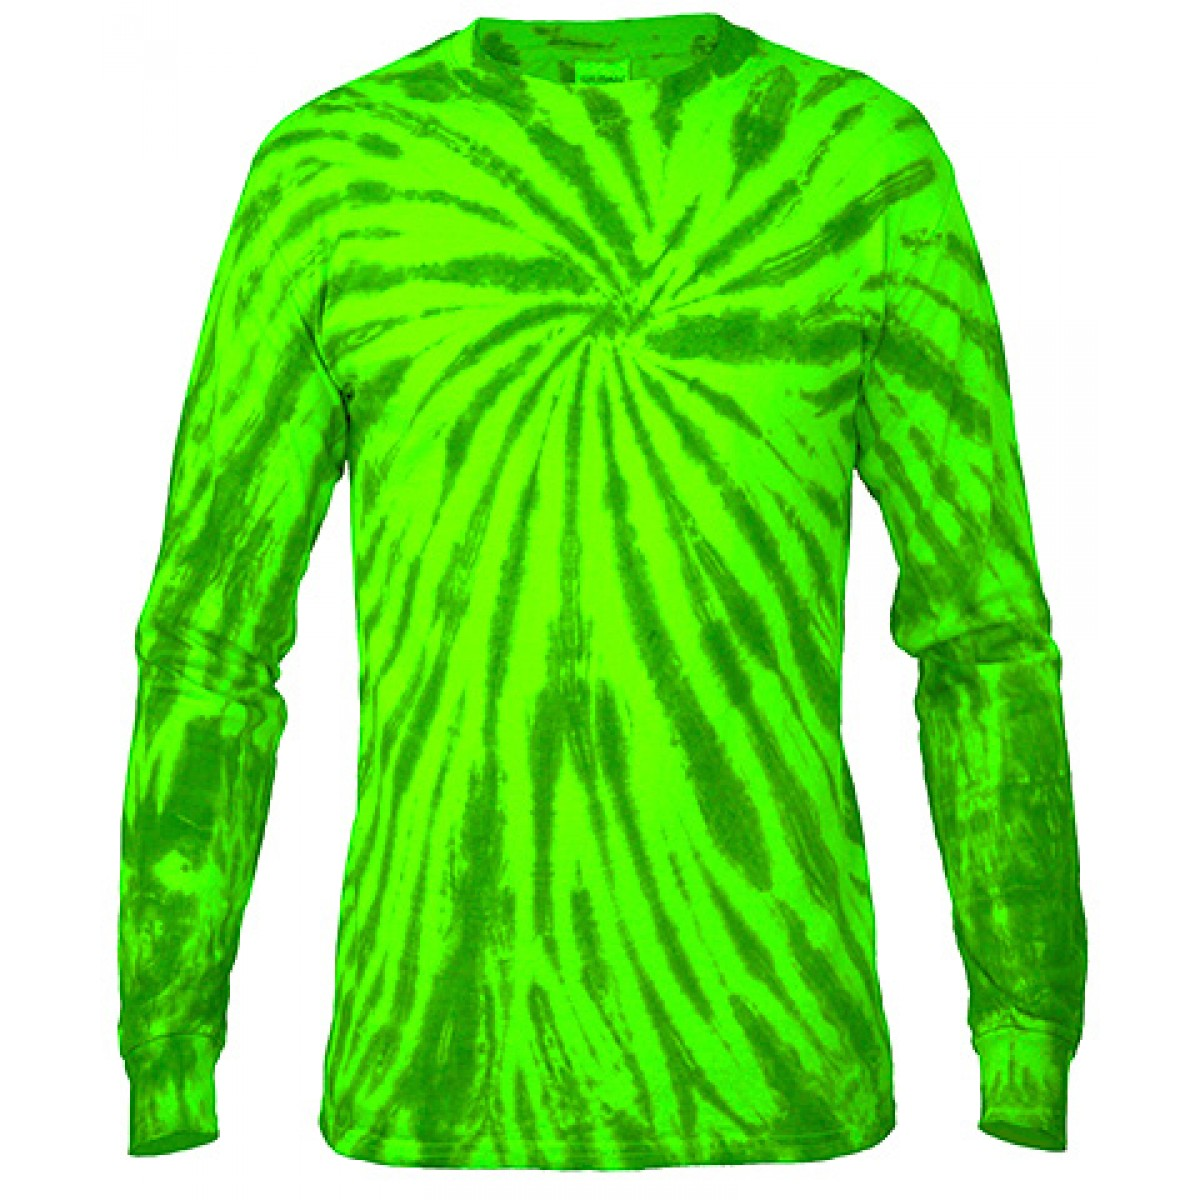 Multi Color Tie-Dye Long Sleeve Shirt -Green-XL